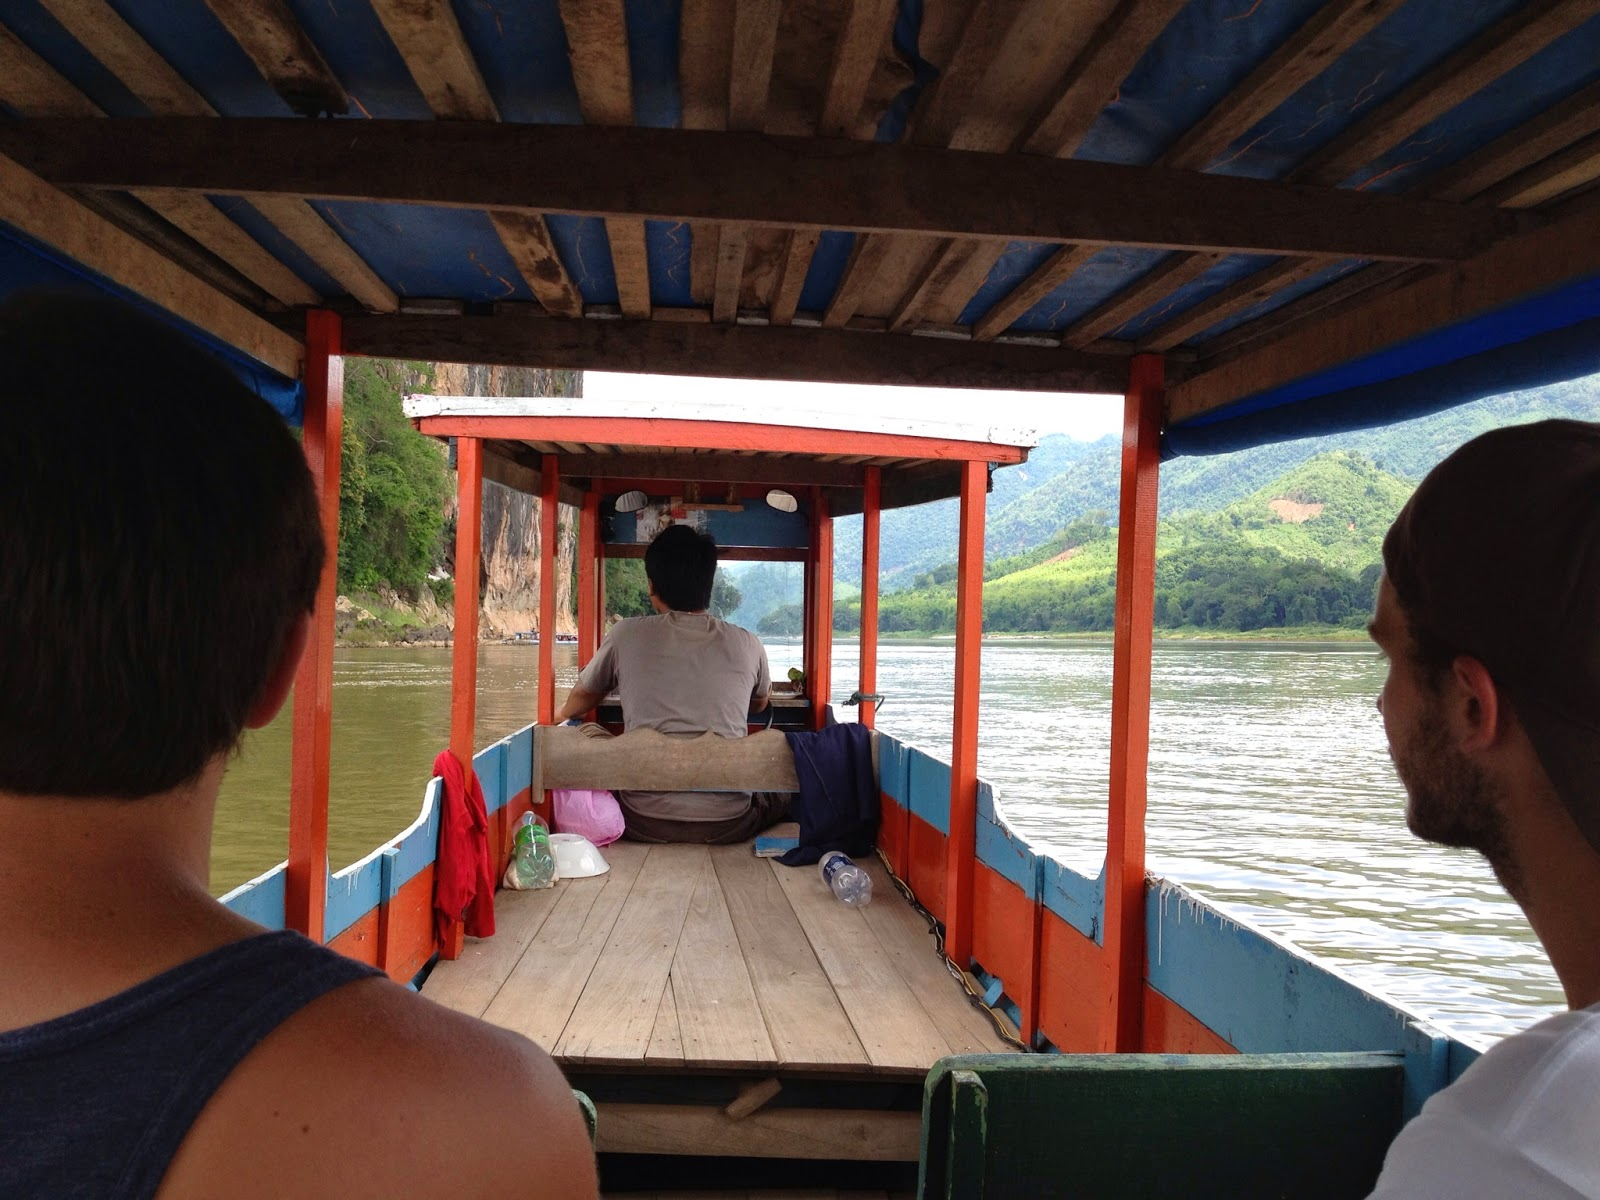 Luang Prabang - Starting our 3 hour boat ride to the Pak Ou Caves